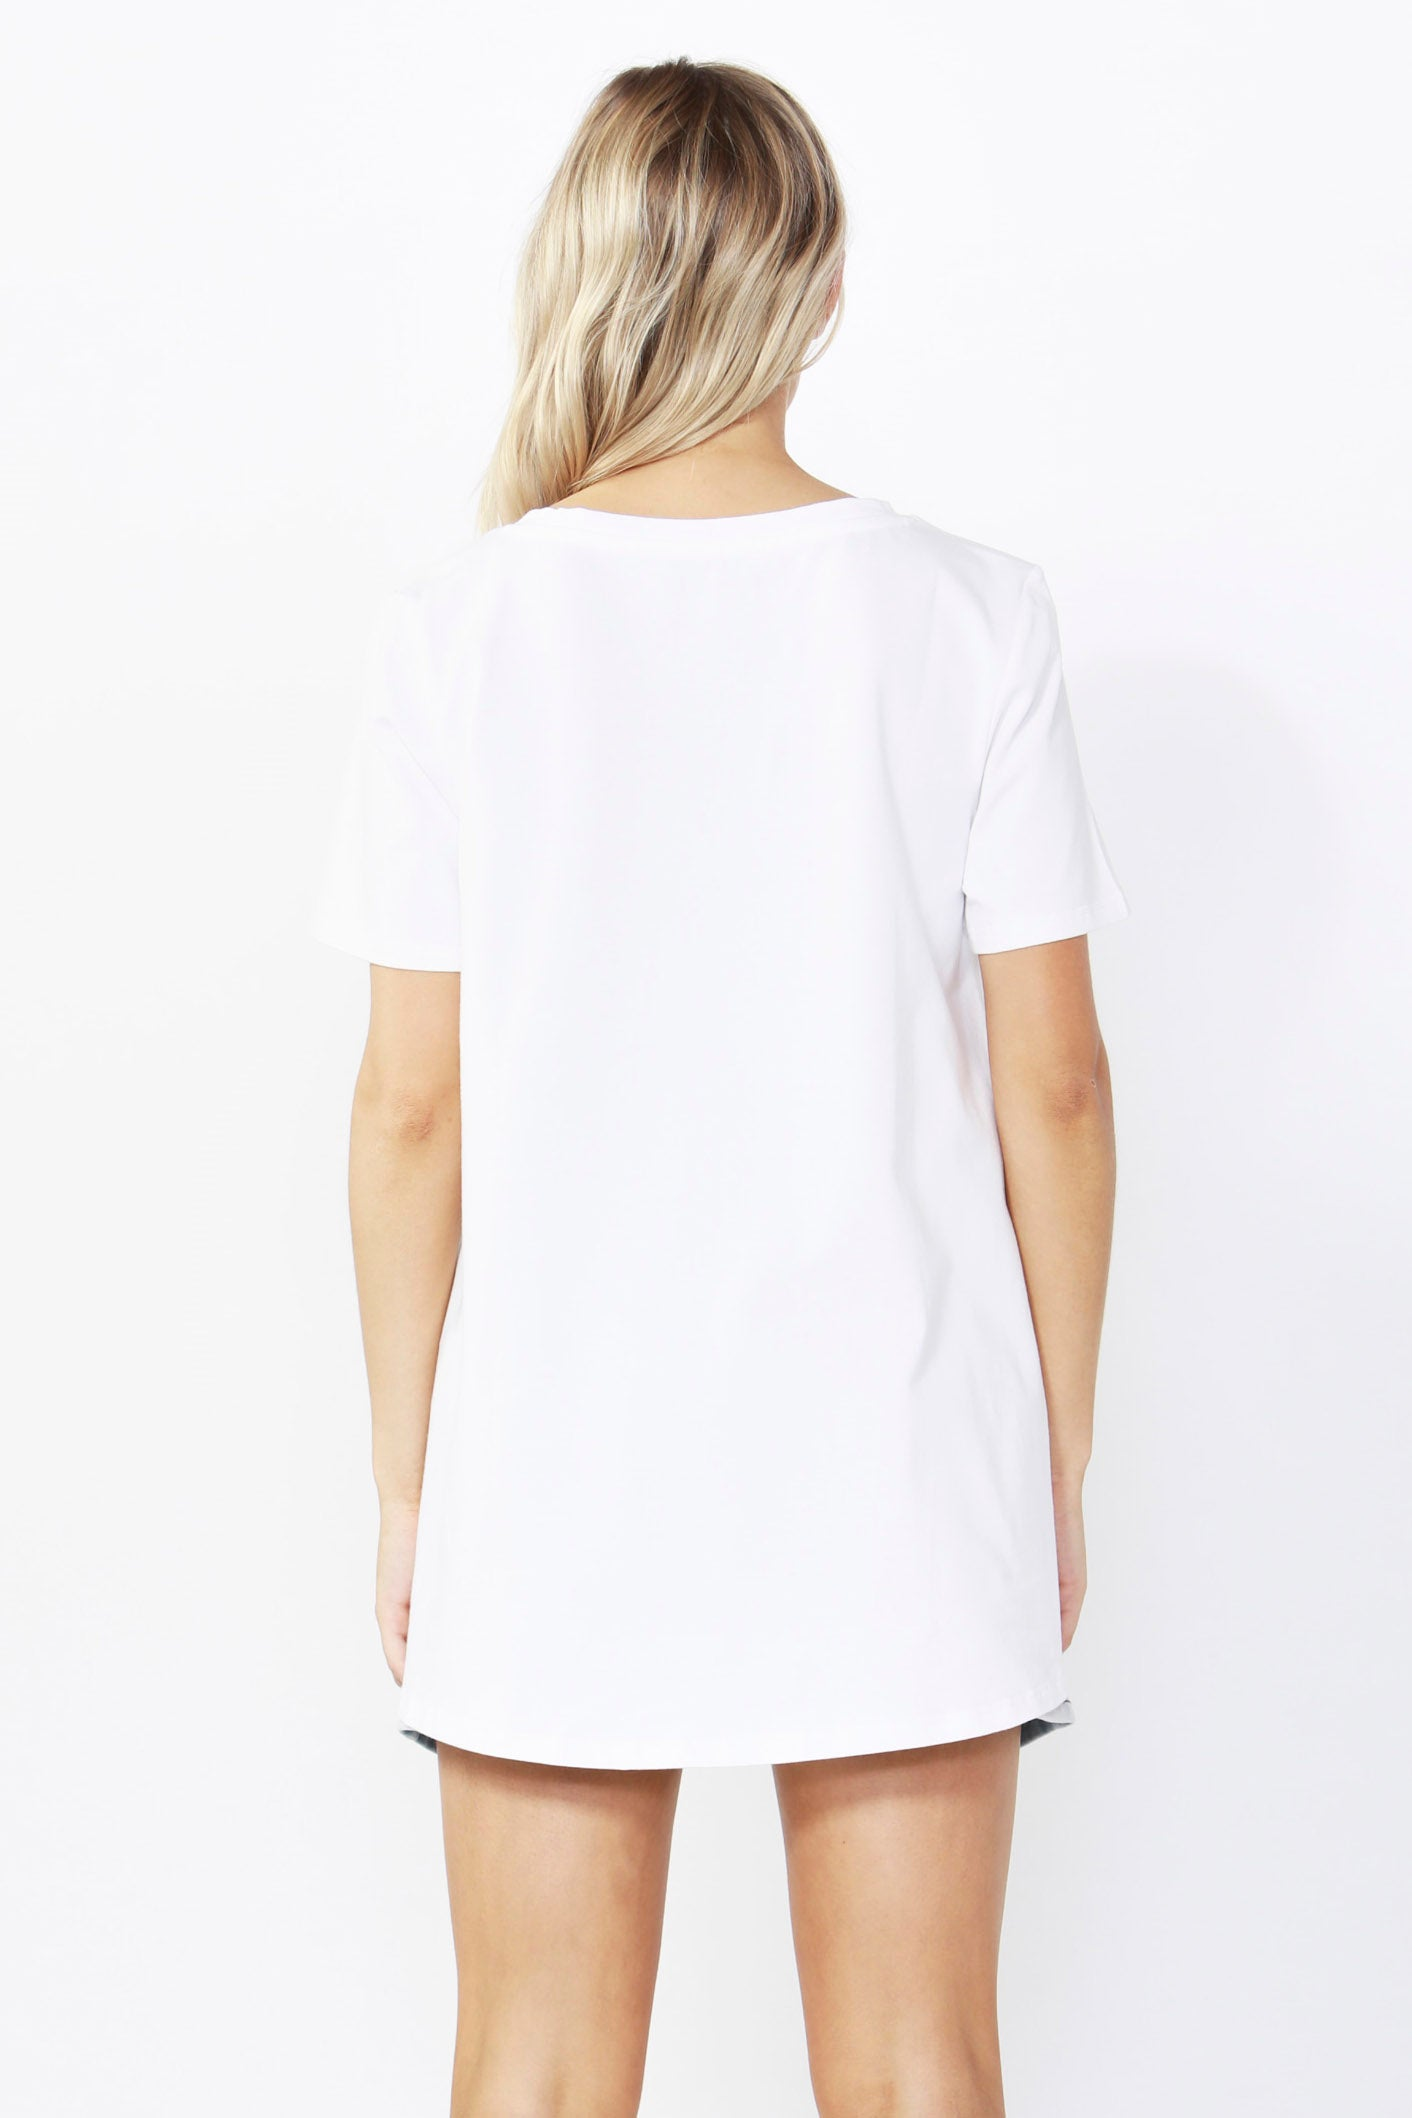 Betty Basics Hannah Tee in White